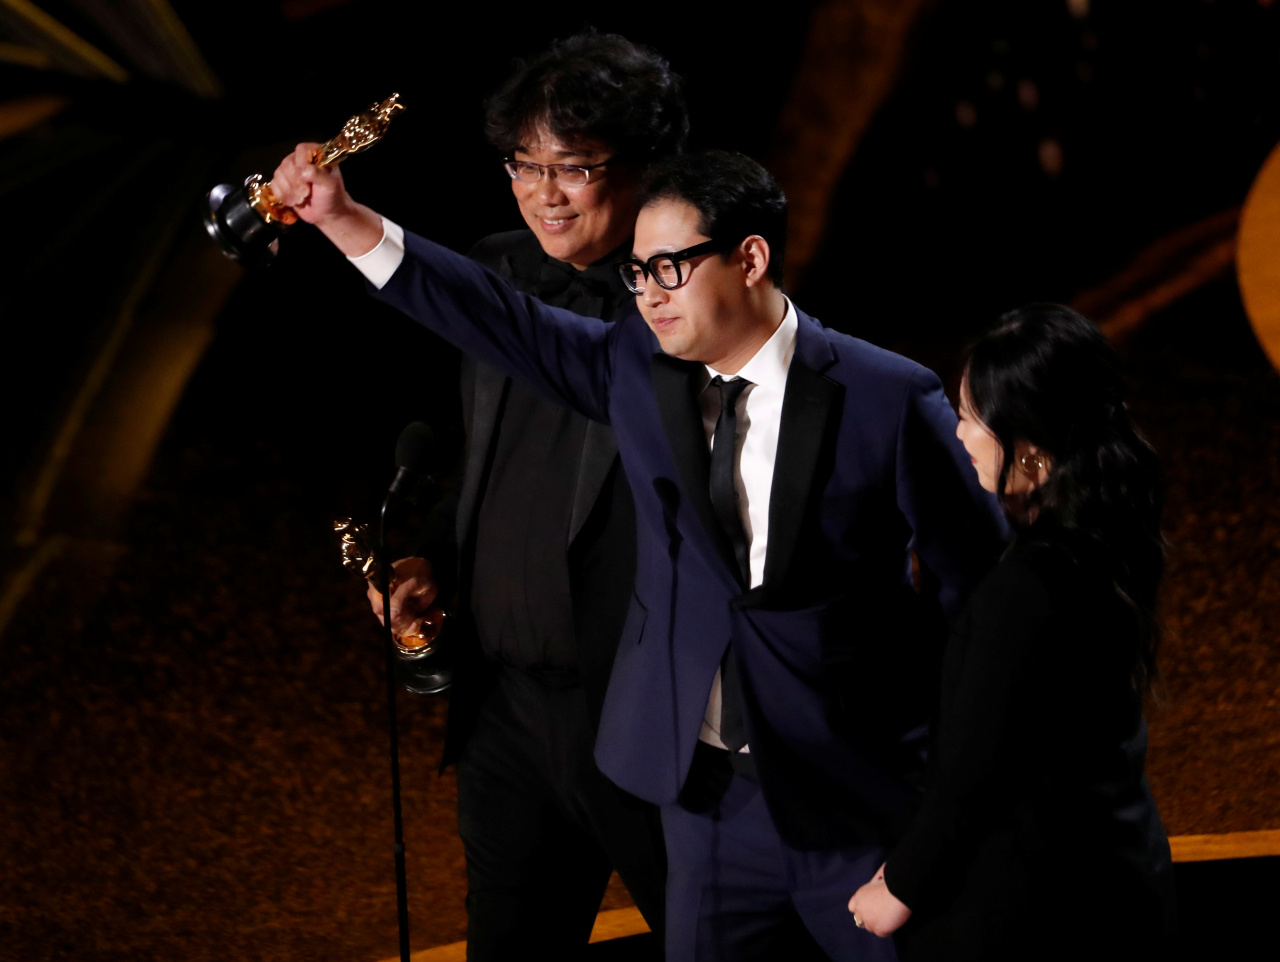 South Korean screenwriter Han Jin-won (center) and South Korean film director Bong Joon-ho accept the award for Best Original Screenplay for